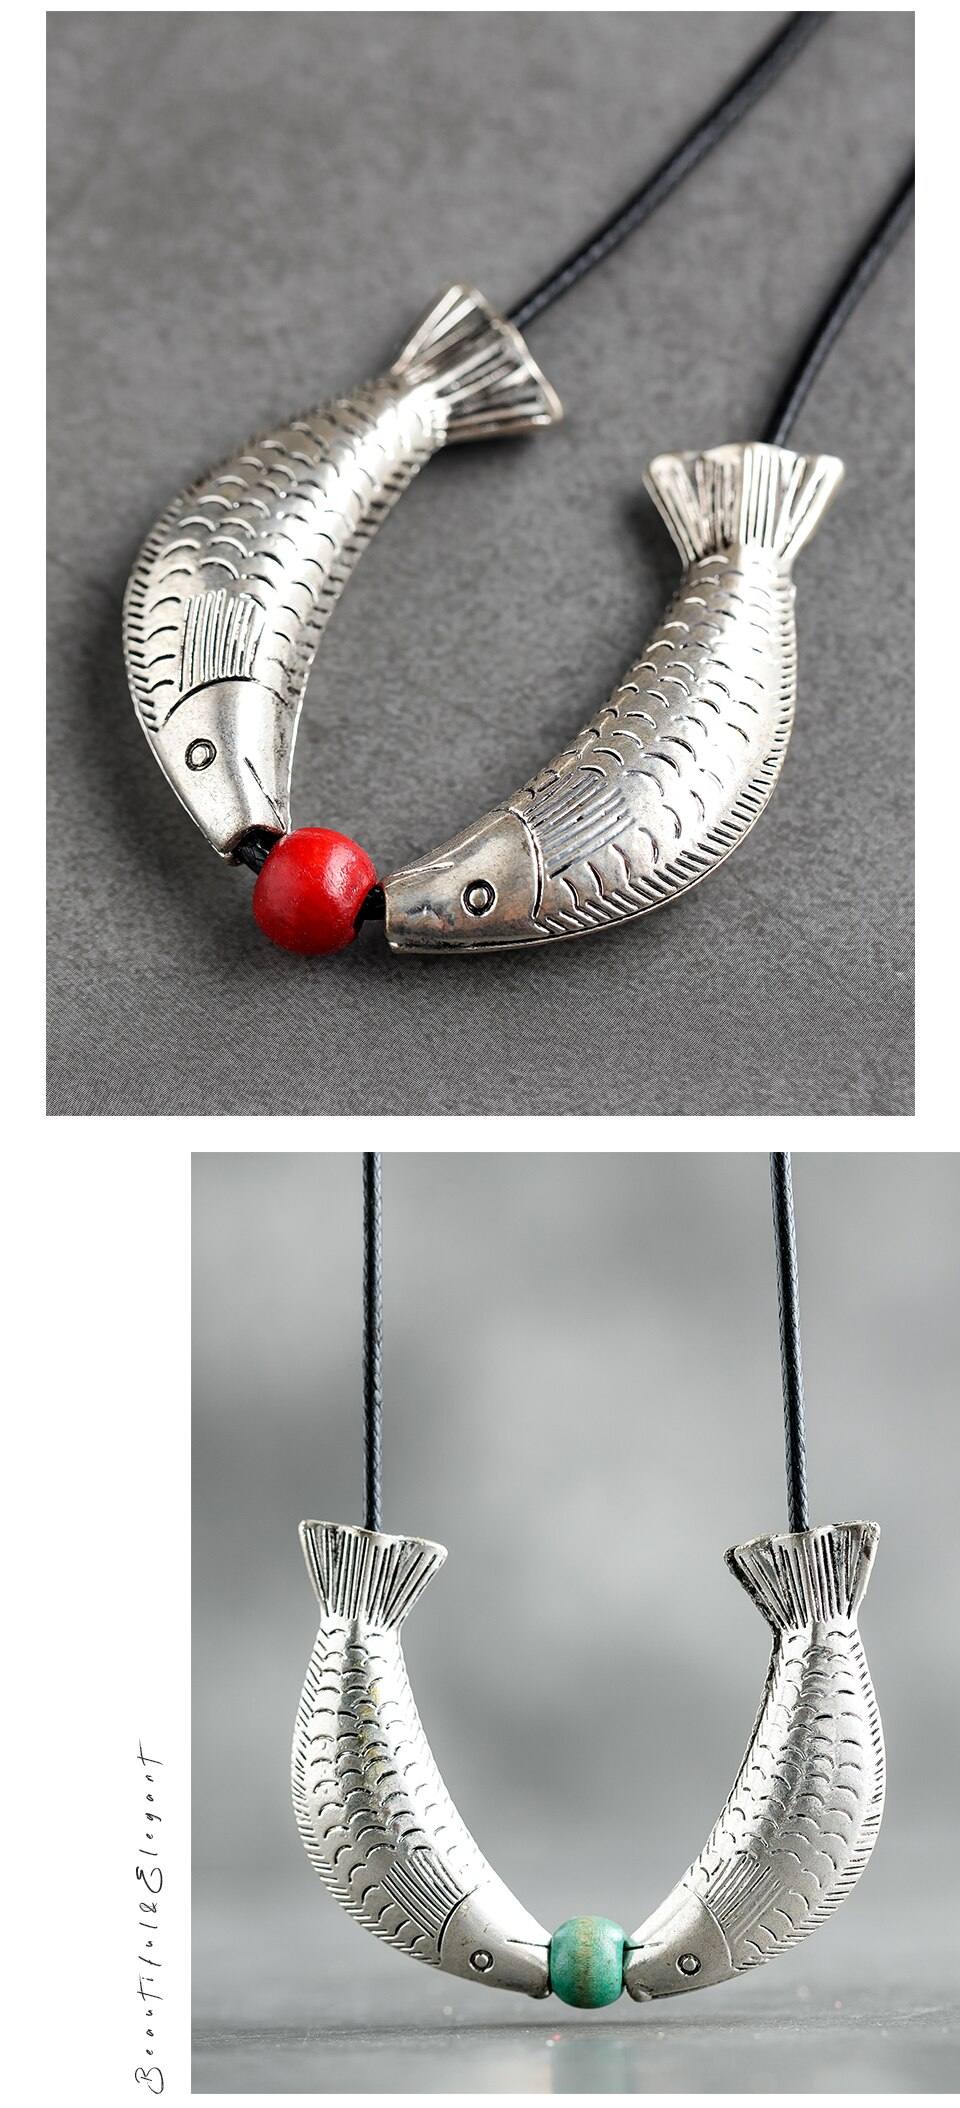 2020 Pendant & Necklaces For Women Wood Beads Fish Pendant Sweater Rope Chain Necklaces Jewelry Handmade New Clothes Accessories